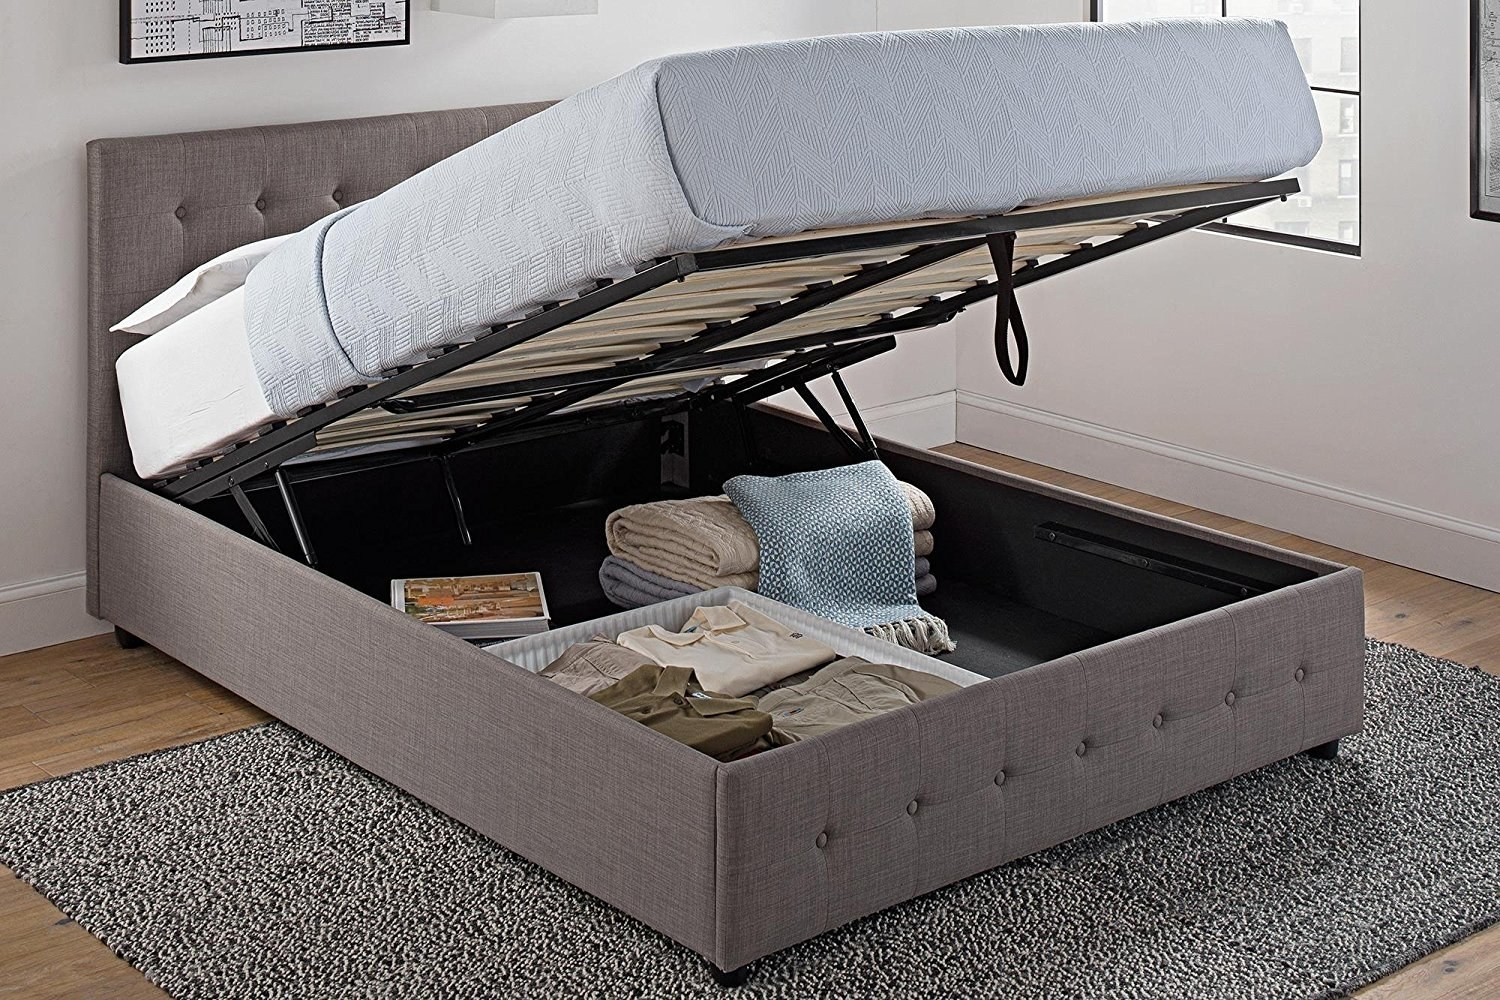 The bed in a room lifted up to reveal a whole area of storage underneath it